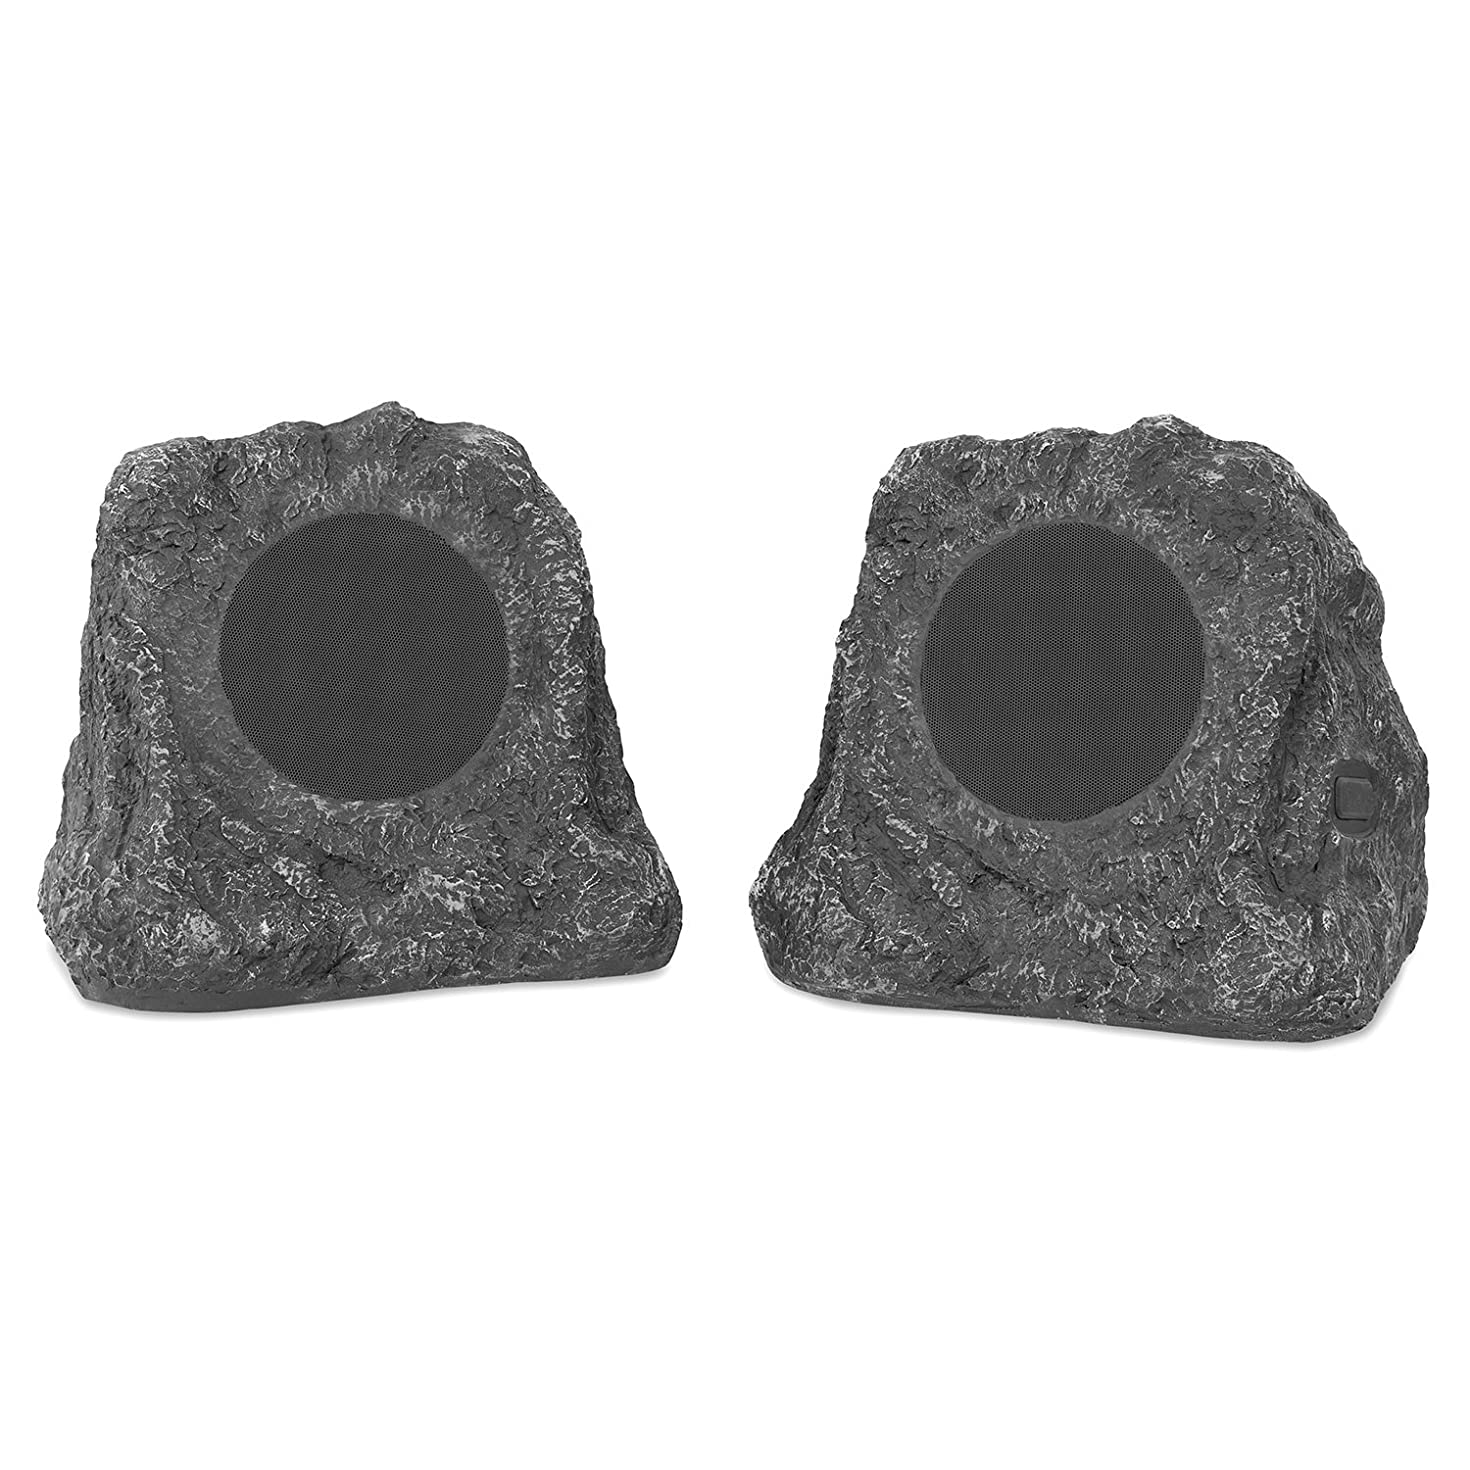 Innovative Technology Premium 5-Watt Bluetooth Outdoor Rock Speakers with A/C Adaptor and Built In Rechargeable 5200mAh Battery, Pair, Charcoal - ITSBO-513P5